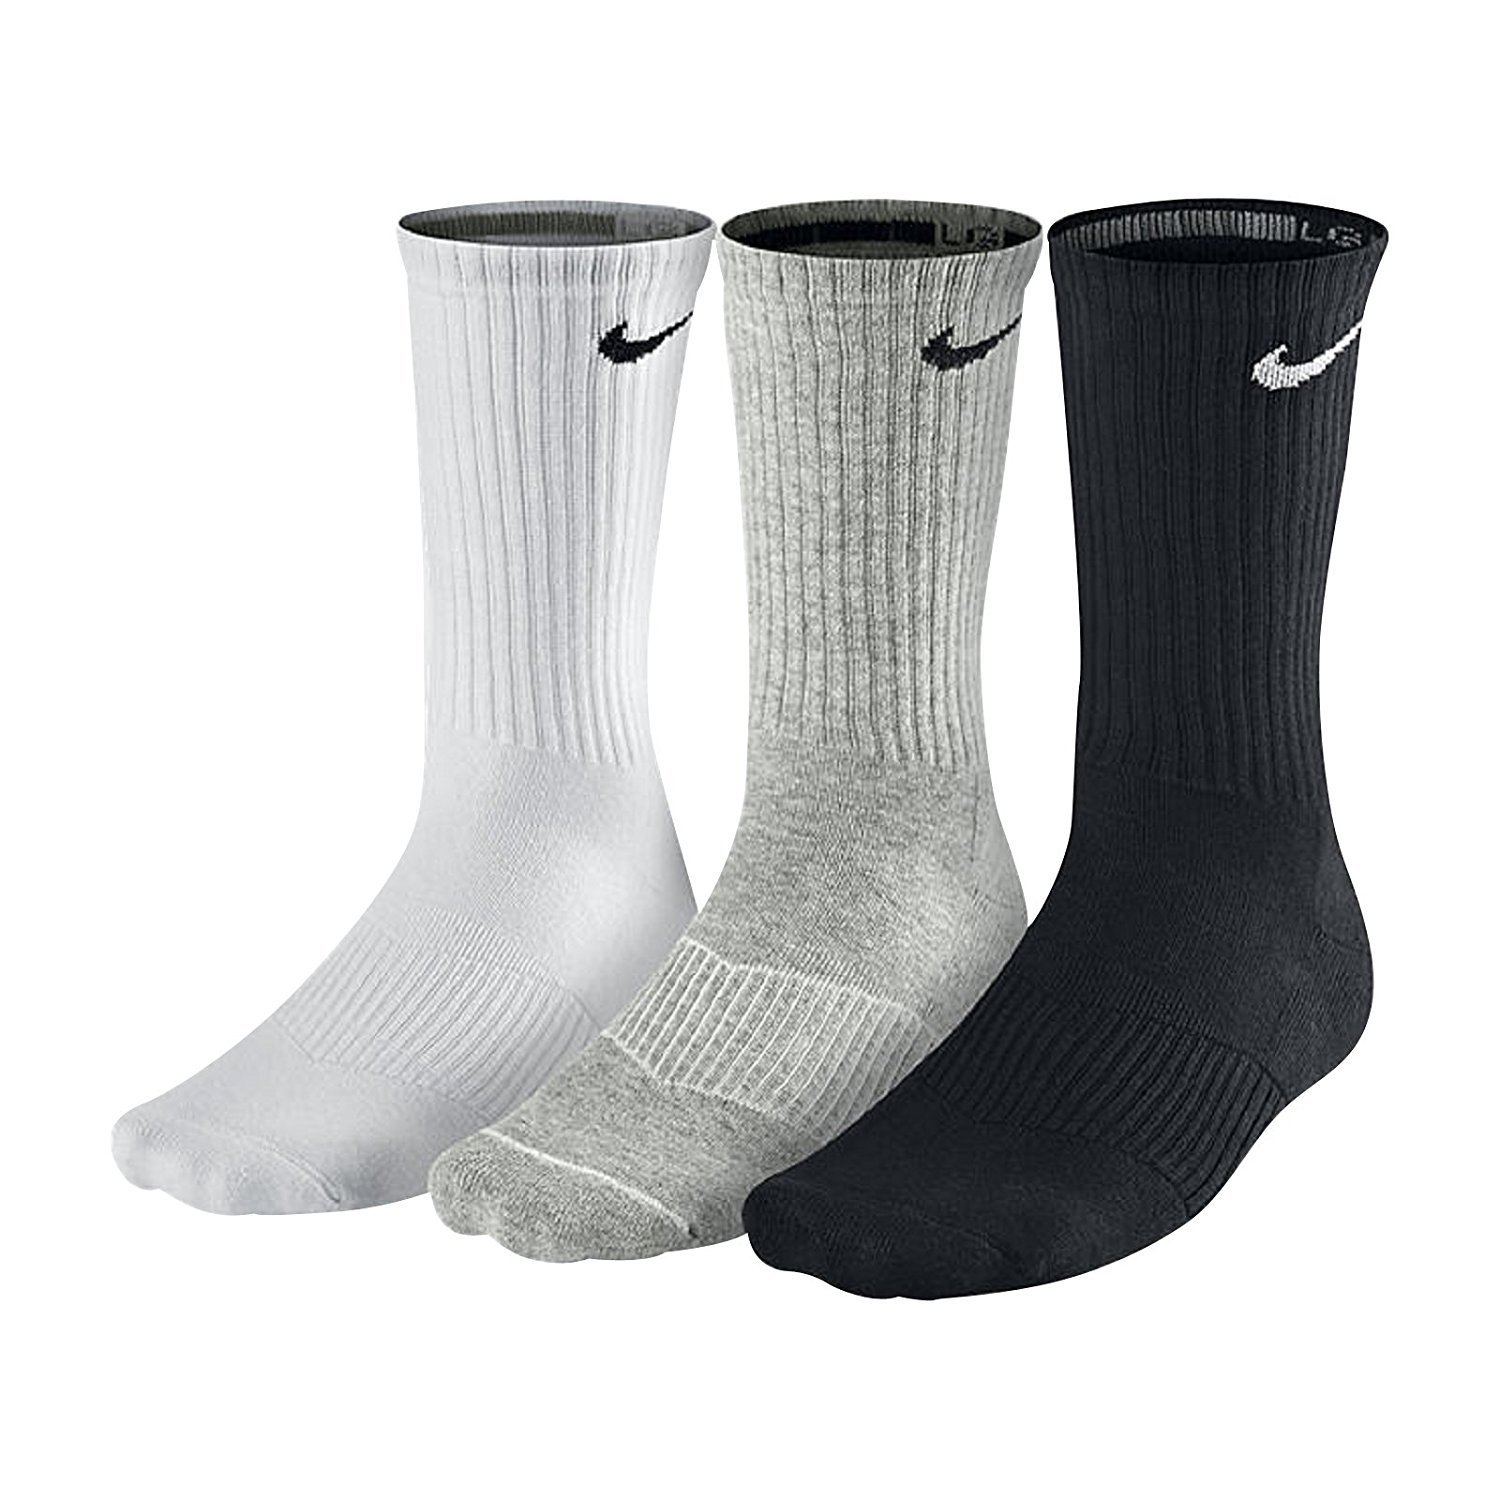 Nike Cotton Cushion Crew Socks - X-Large (Men's Size 12-15) - Grey/Black/White (Pack of 3) by Nike